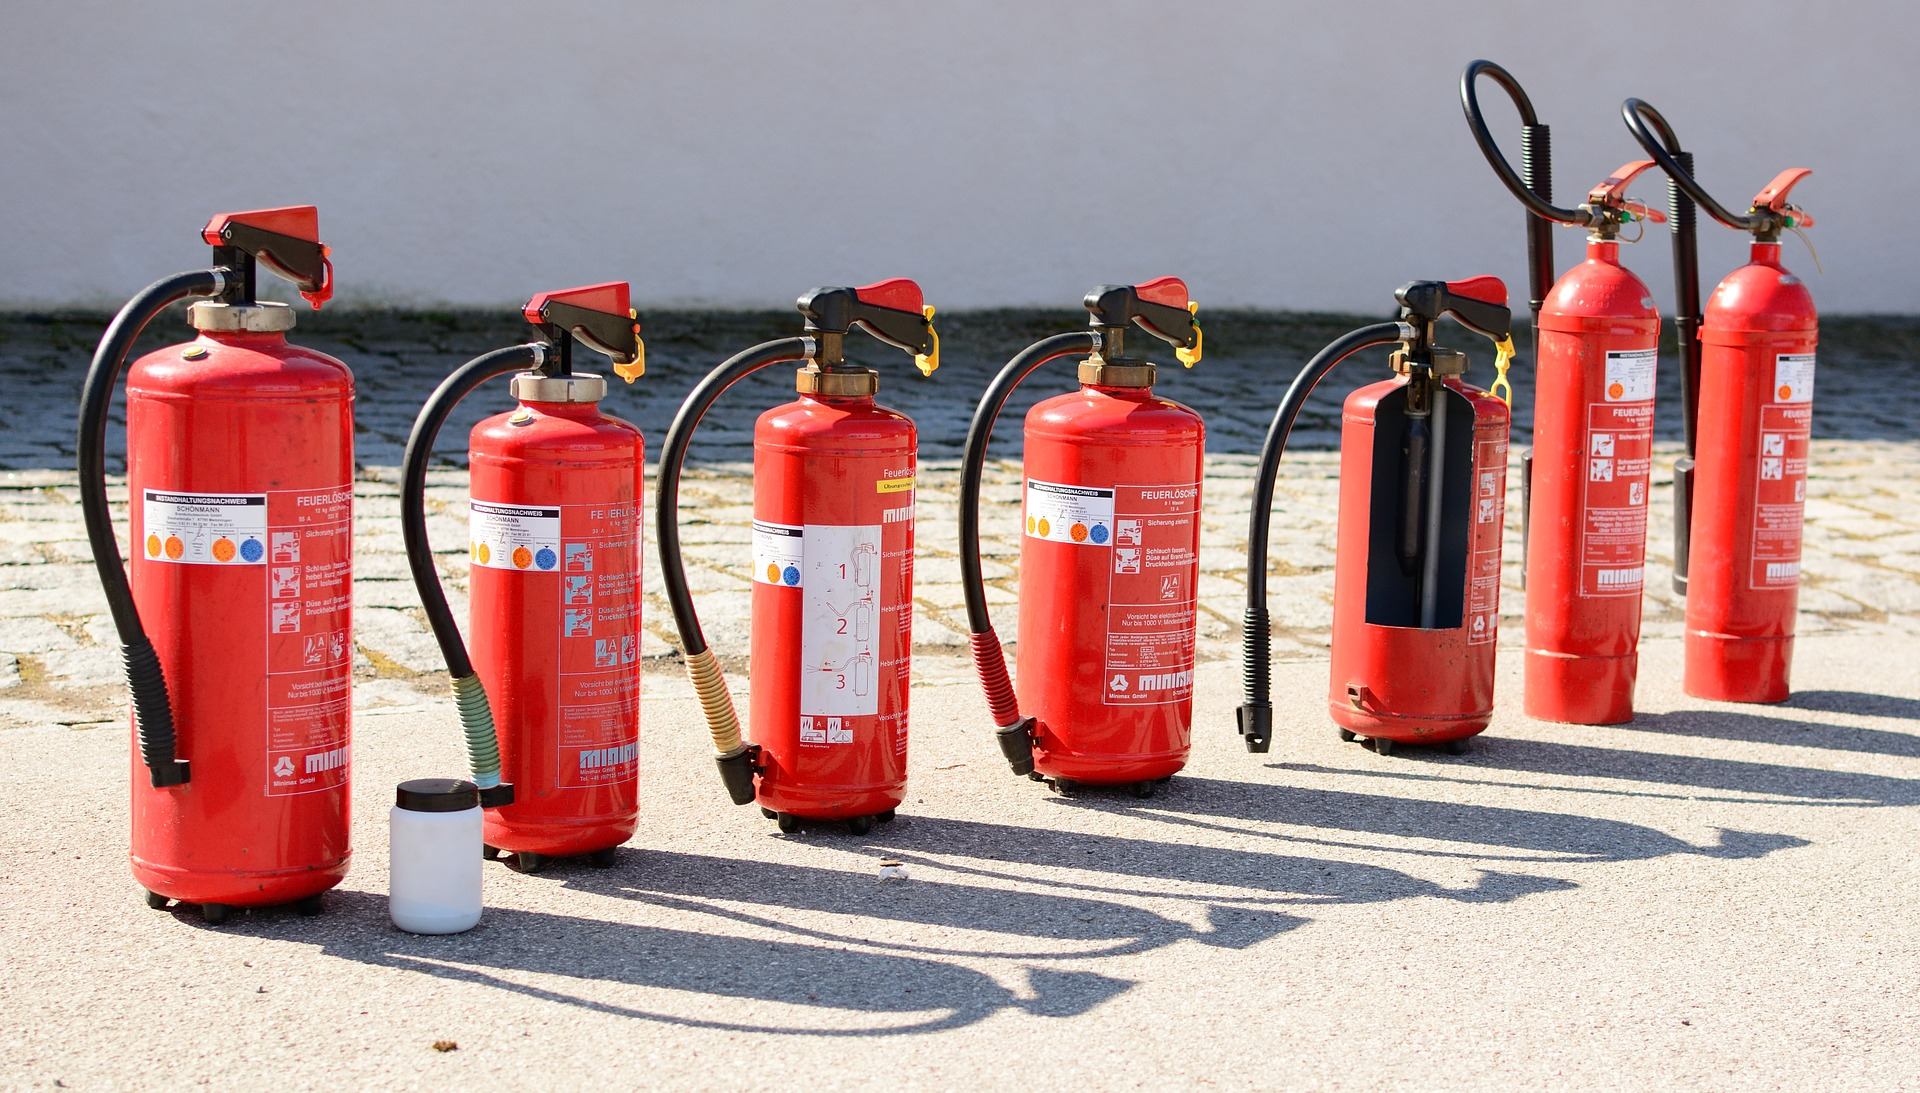 Should you own a fire extinguisher?